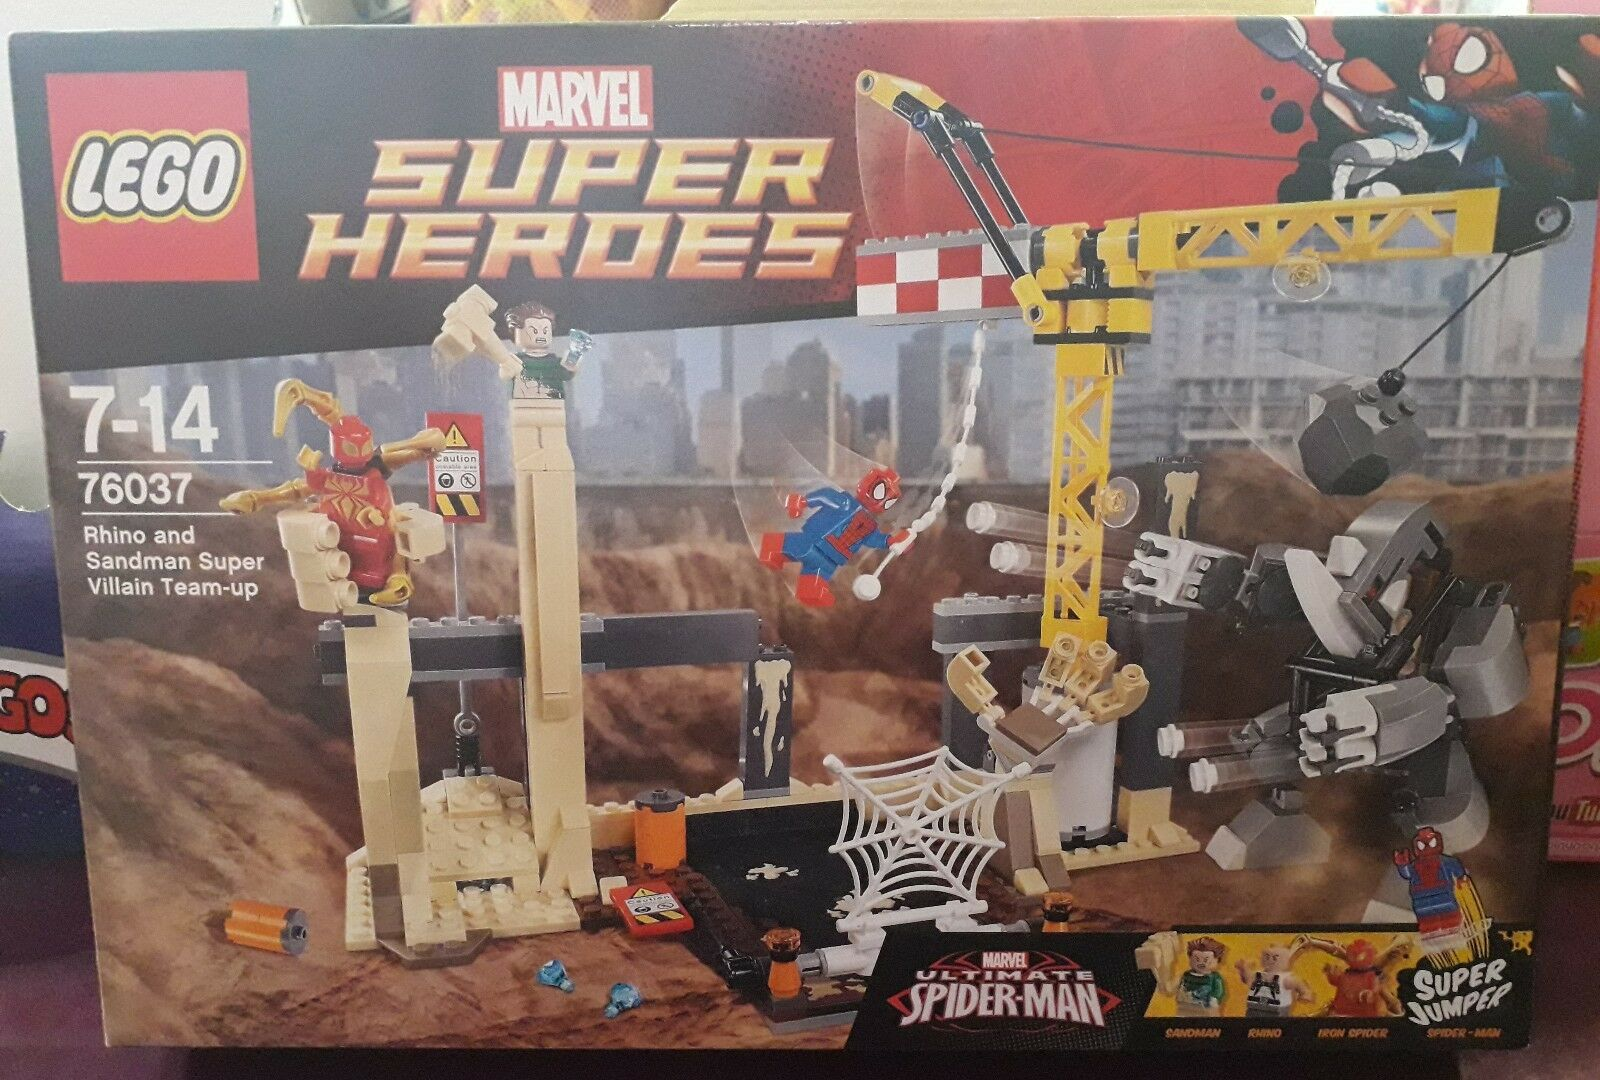 LEGO MARVEL SUPER HEROES 76037 RHINO AND SANDMAN SUPER VILLAIN TEAM-UP